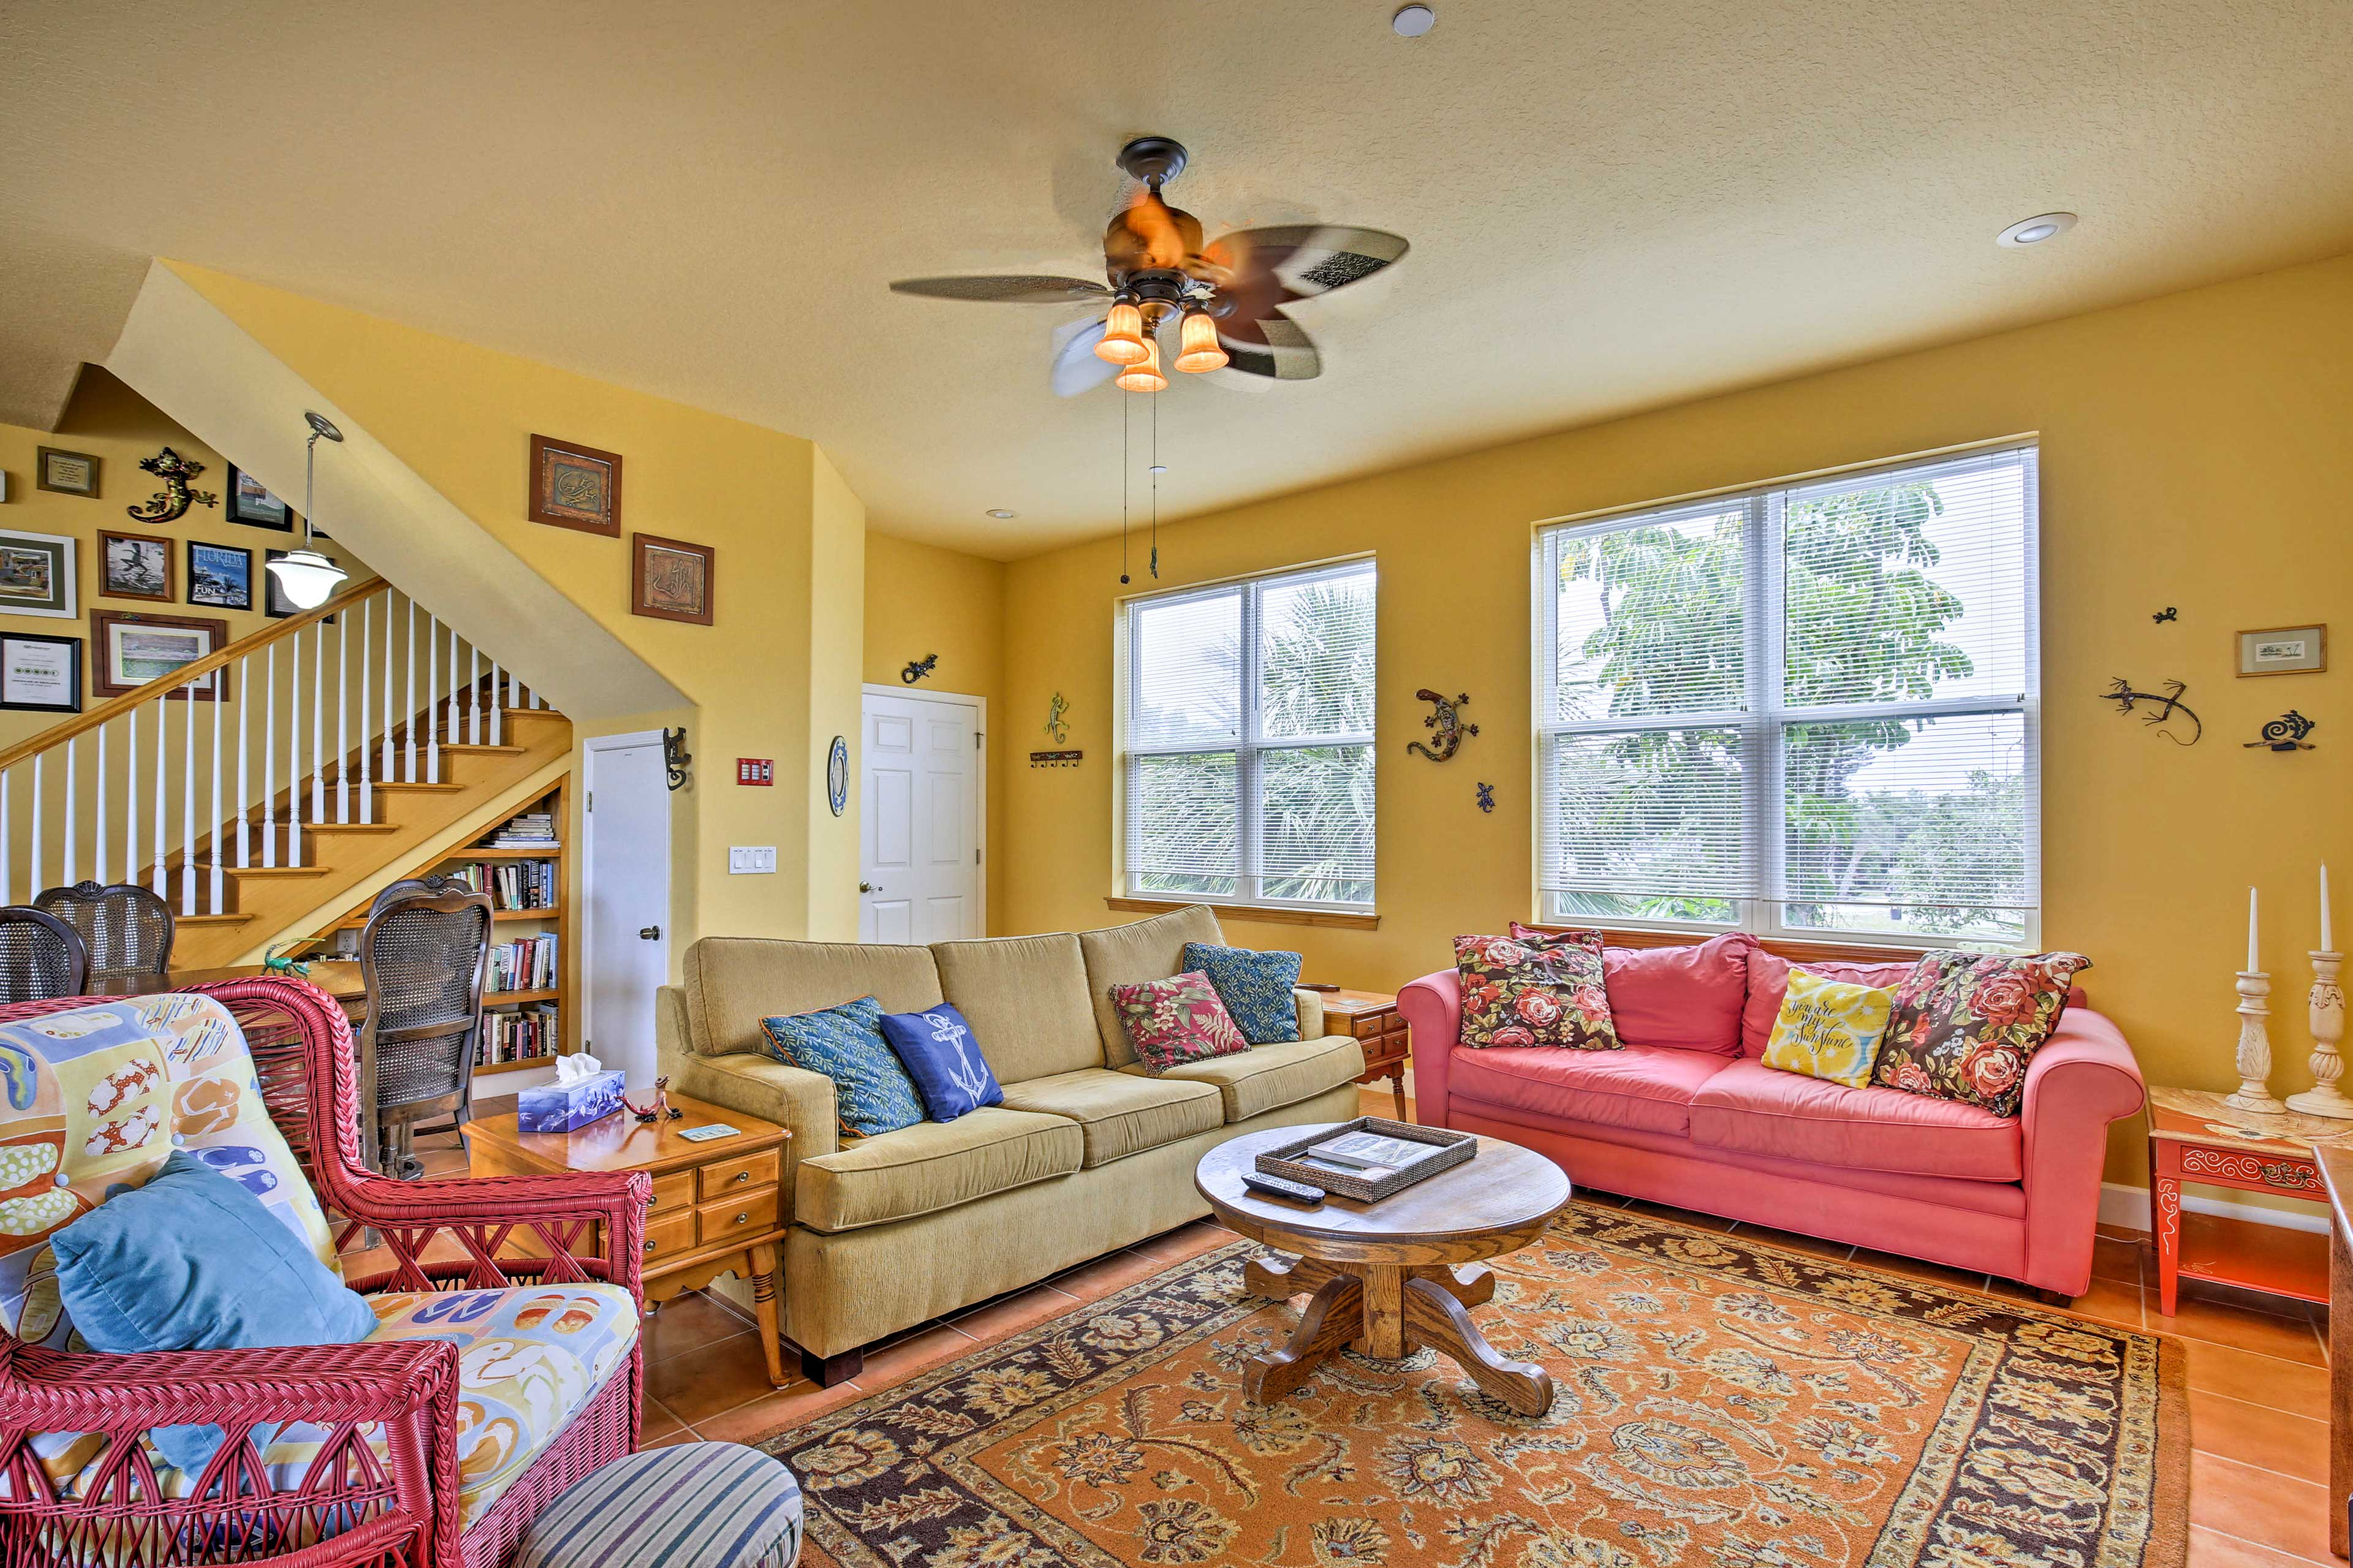 Large windows frame the great room and fill the space with Florida sunshine.